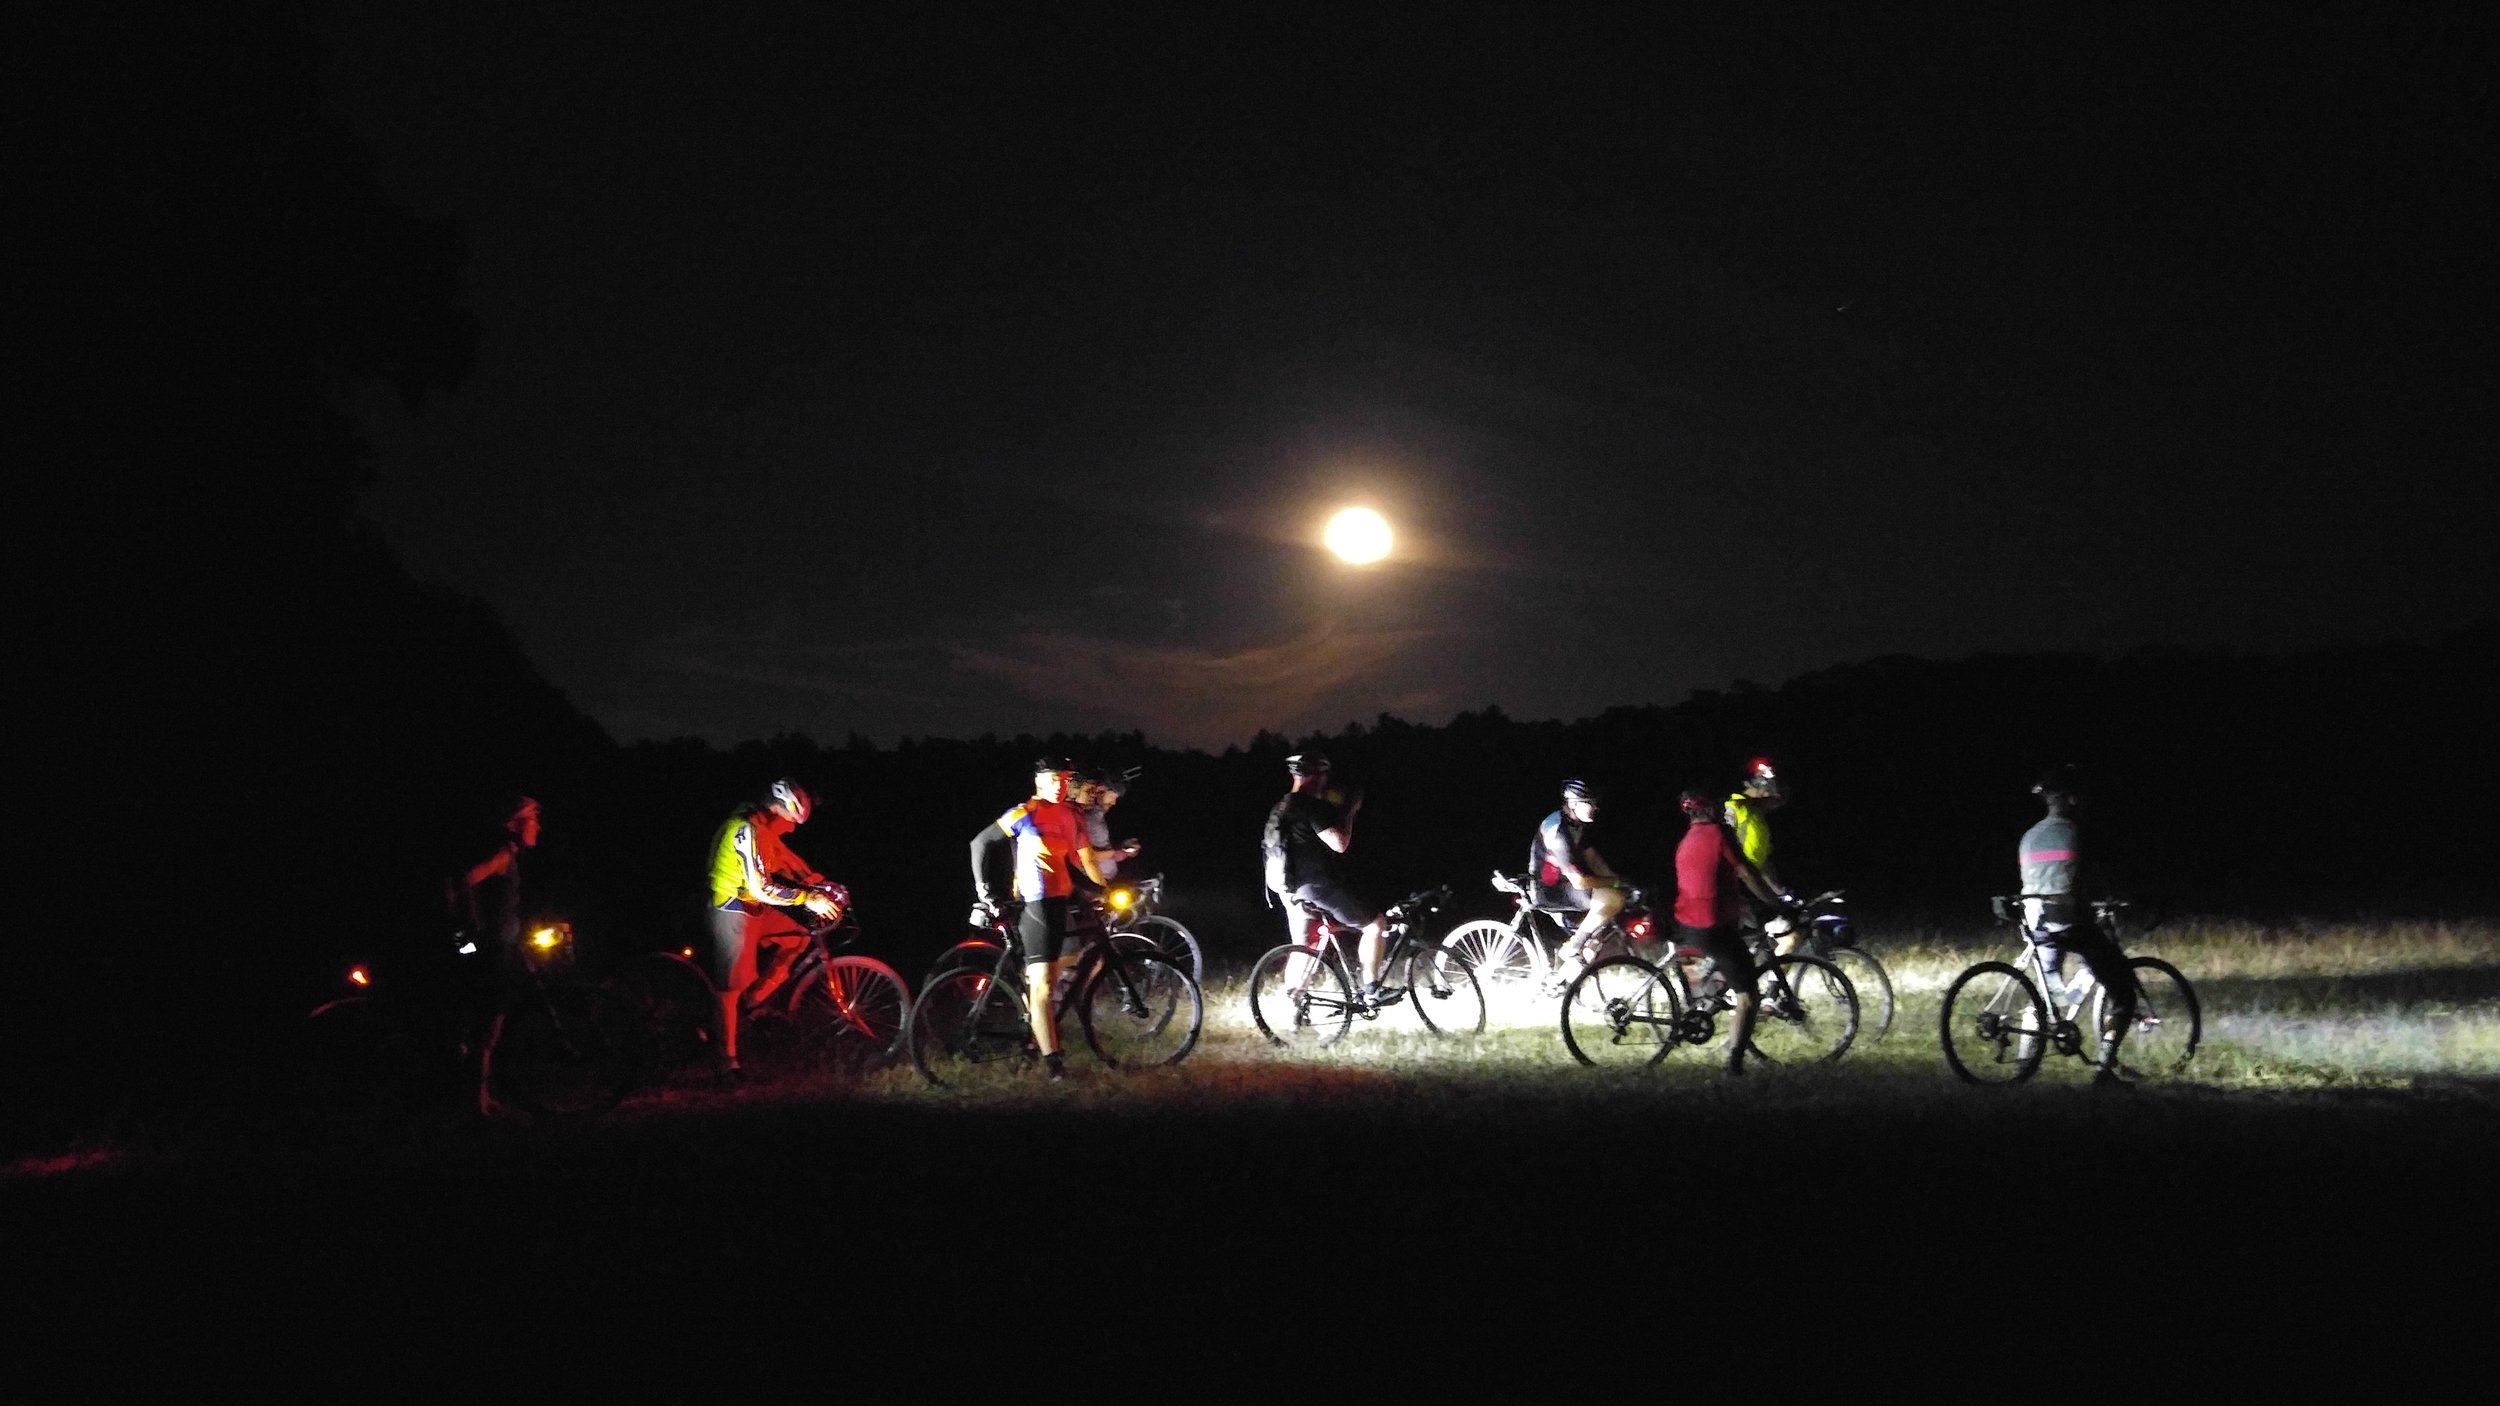 The Full Moon ride runs all year at Ride Headquarters. We find a large number of people are able to enjoy a bike ride after dinner at home with their families.